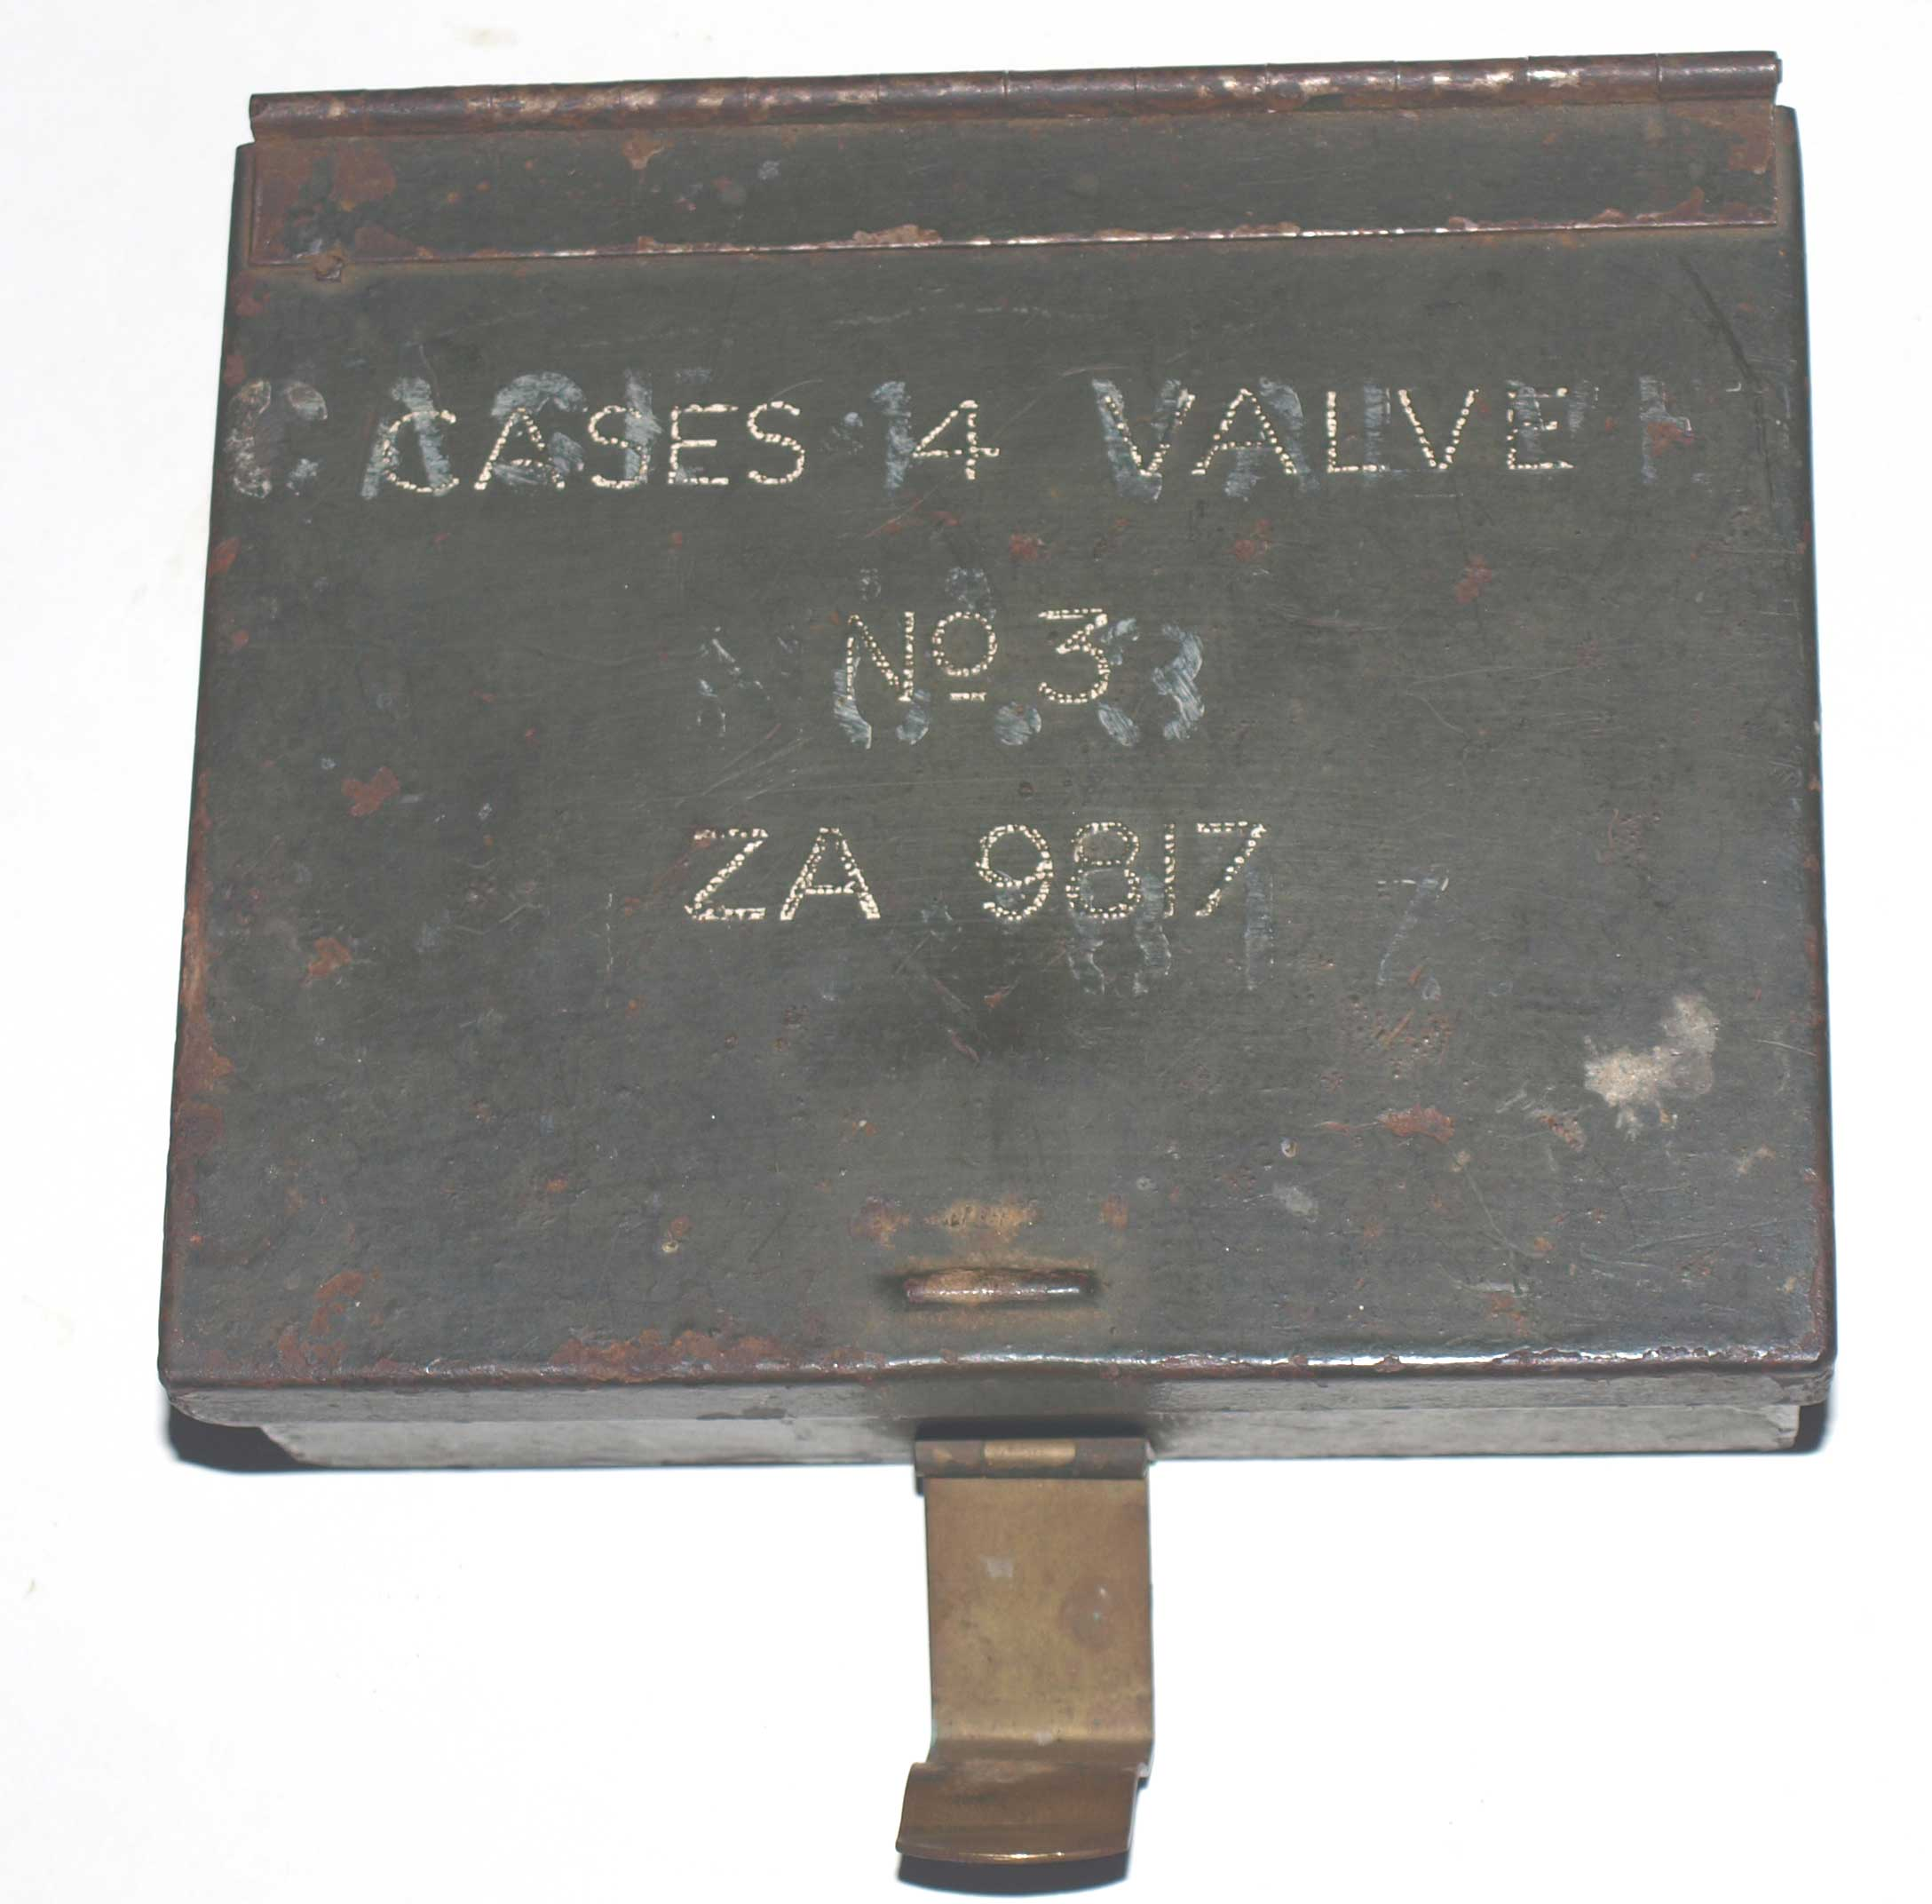 Case No3 for WS38 spare valves-with contents